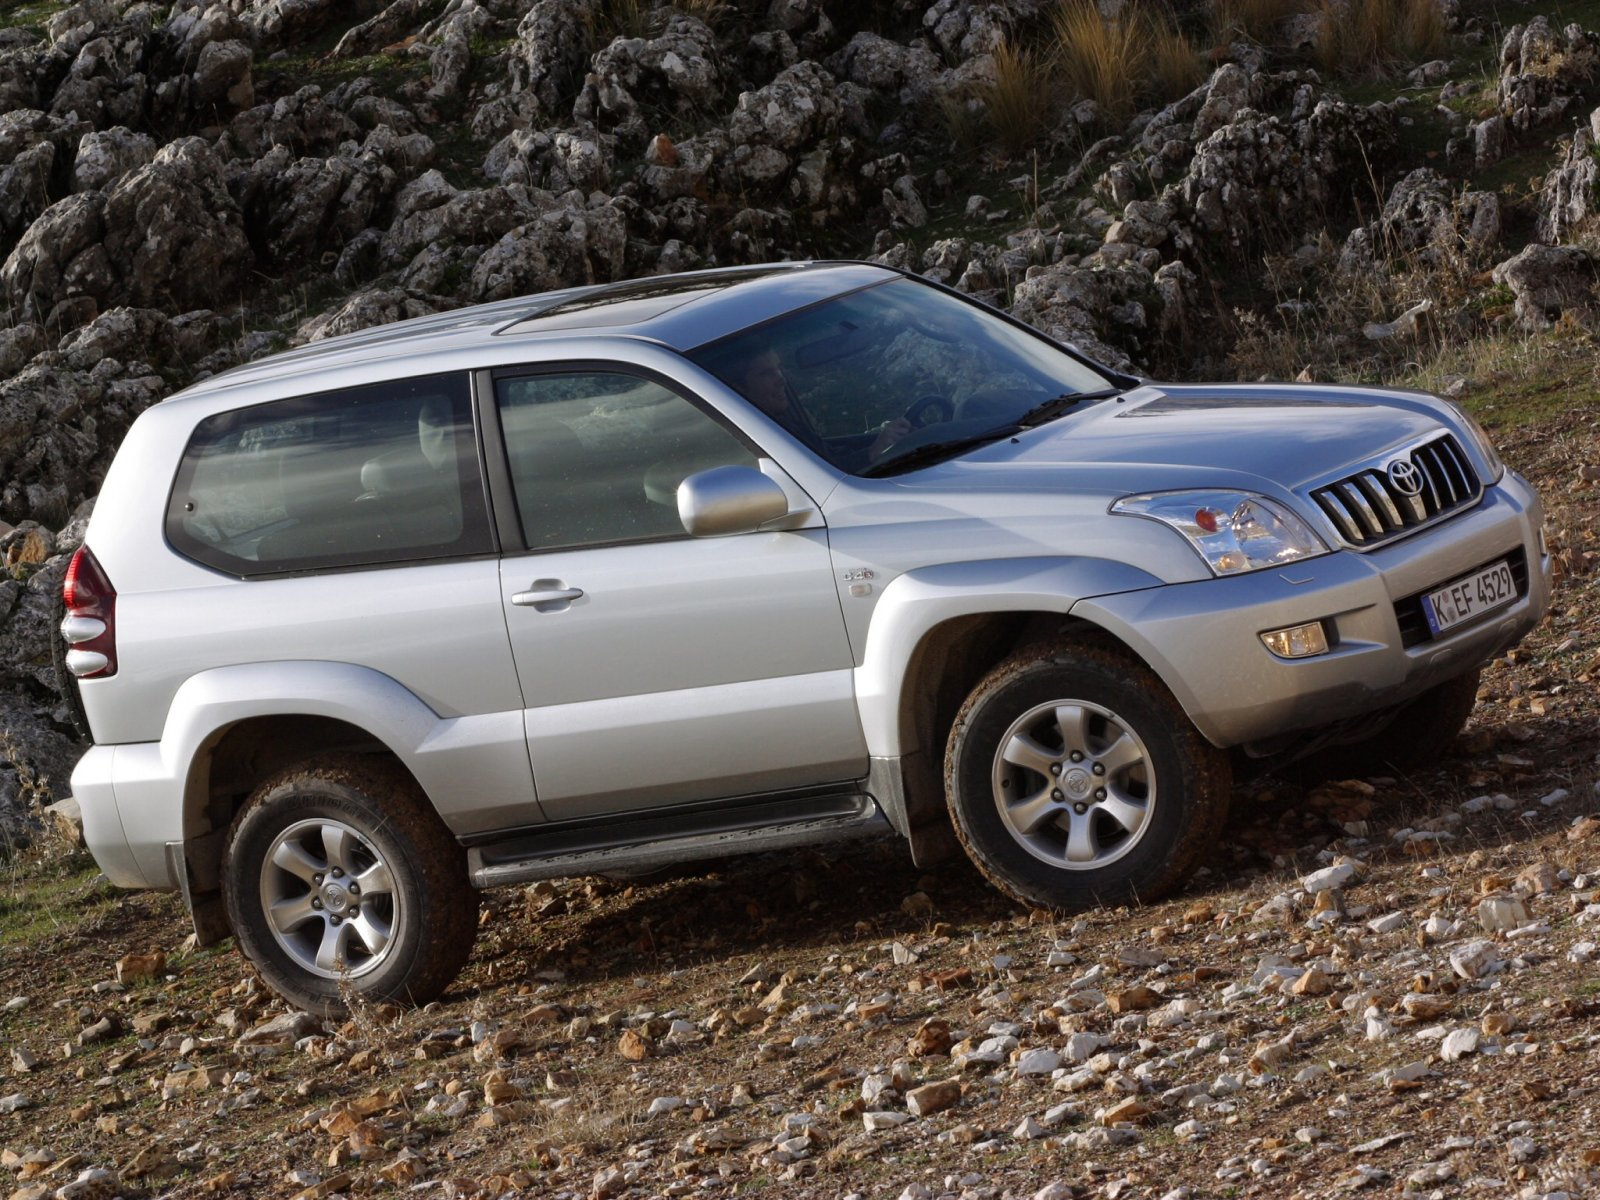 Toyota Land Cruiser Prado 3.0 2009 photo - 11